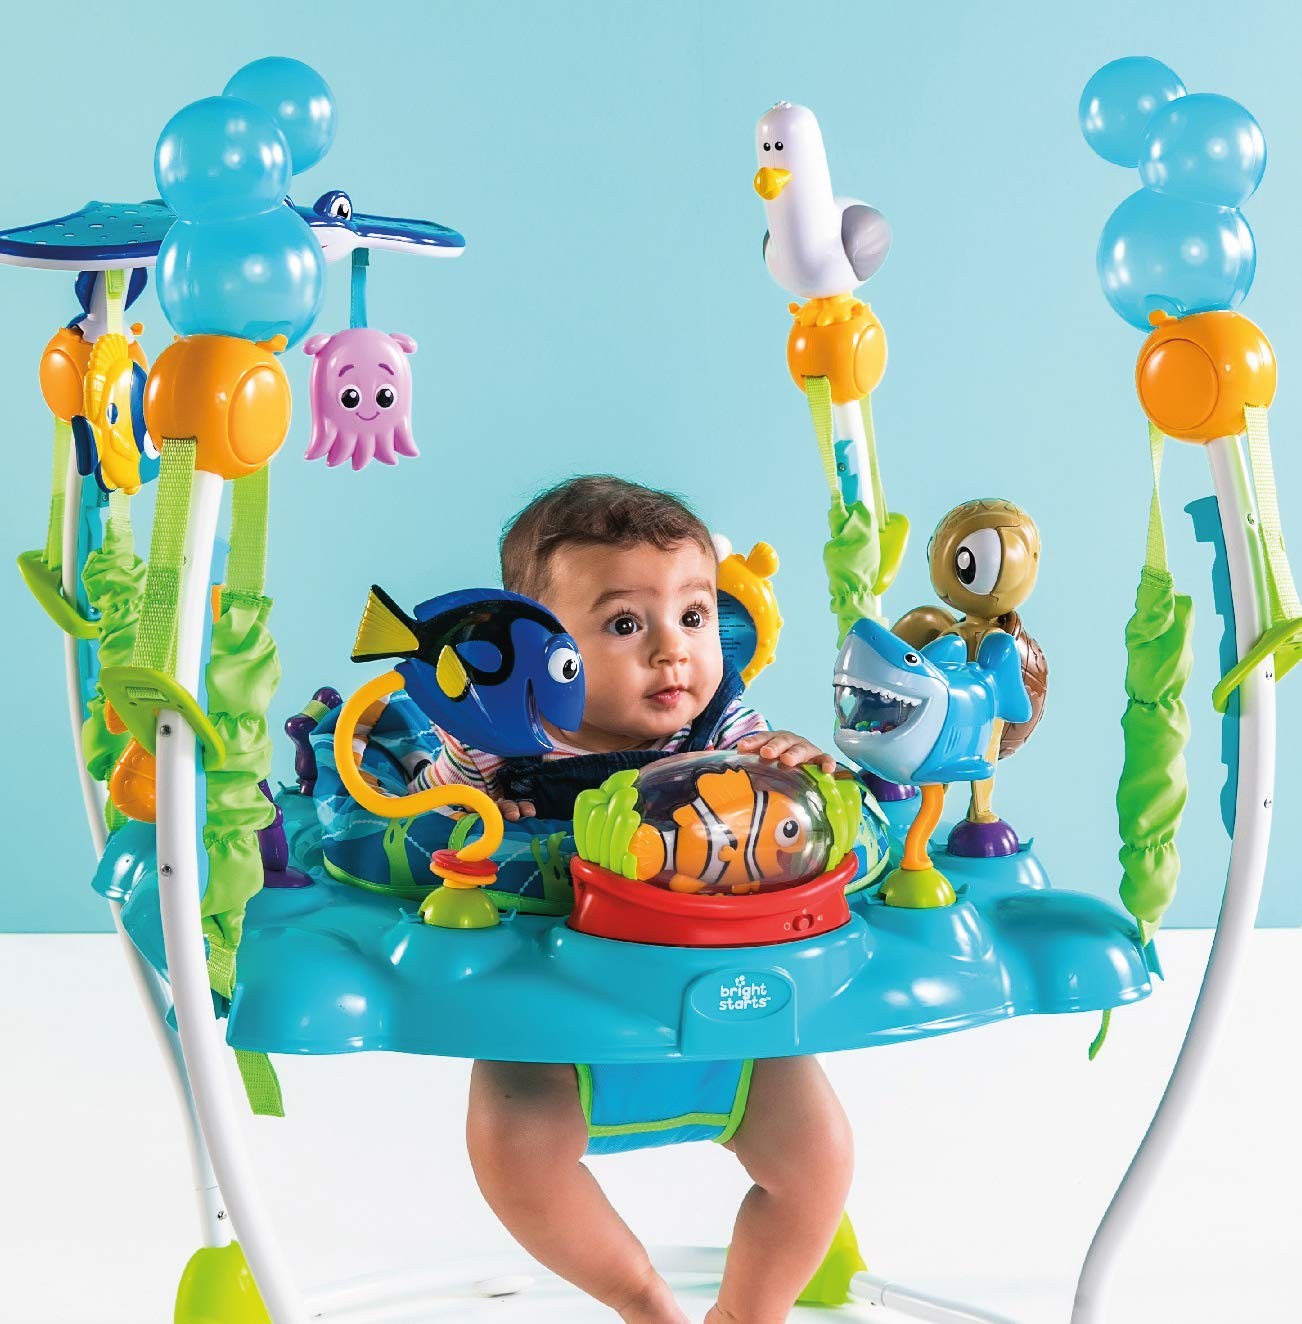 744d6e882ef2 Amazon.com   Disney Baby Finding Nemo Sea of Activities Jumper   Baby